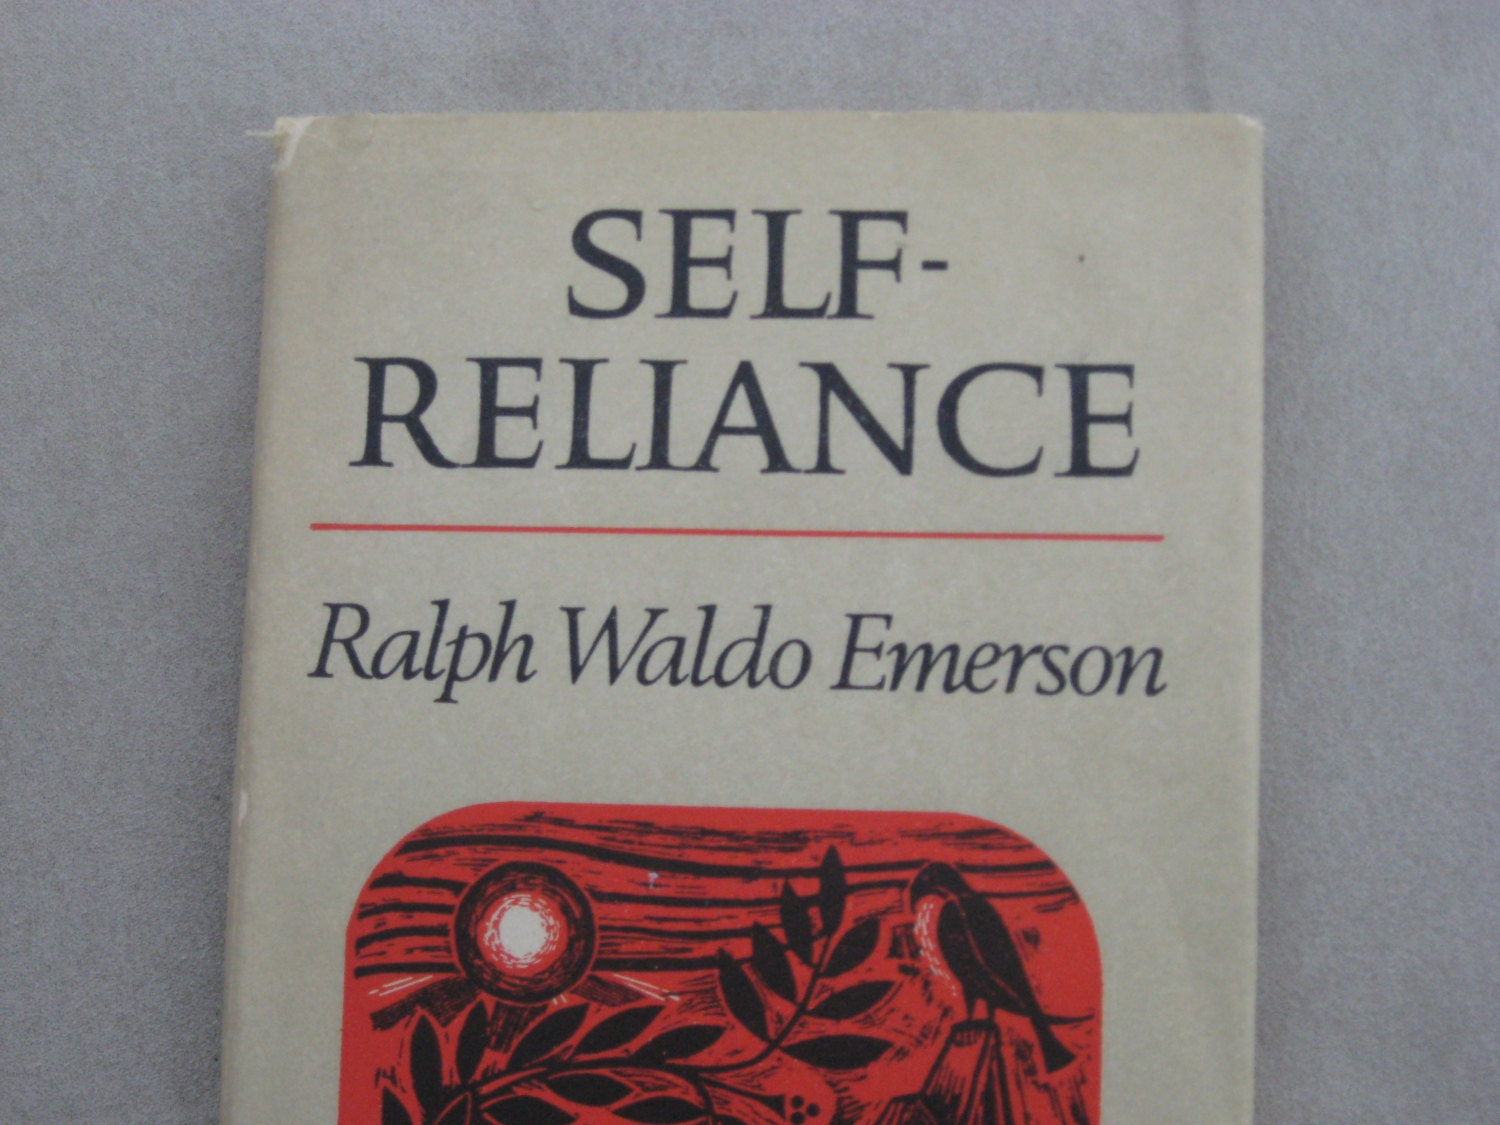 ralph waldo emerson self reliance essay summary Self-reliance ralph waldo emerson 1841 \ne te quaesiveris extra \man is his own star and the soul that can summary way of boys, as good, bad, interesting.